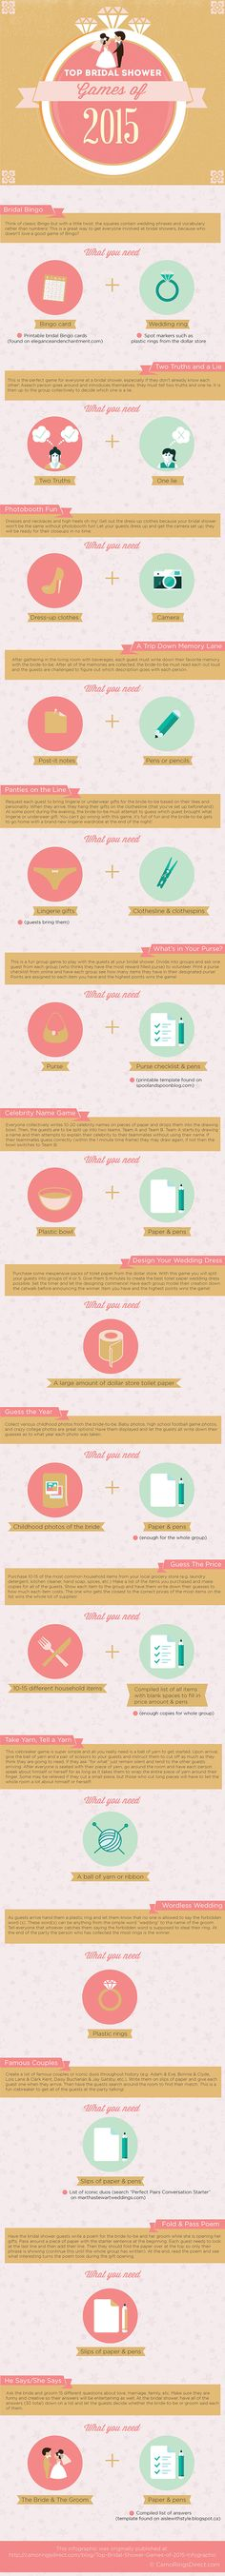 The Perfect Bridal Shower Checklist | Events || Games, Treats